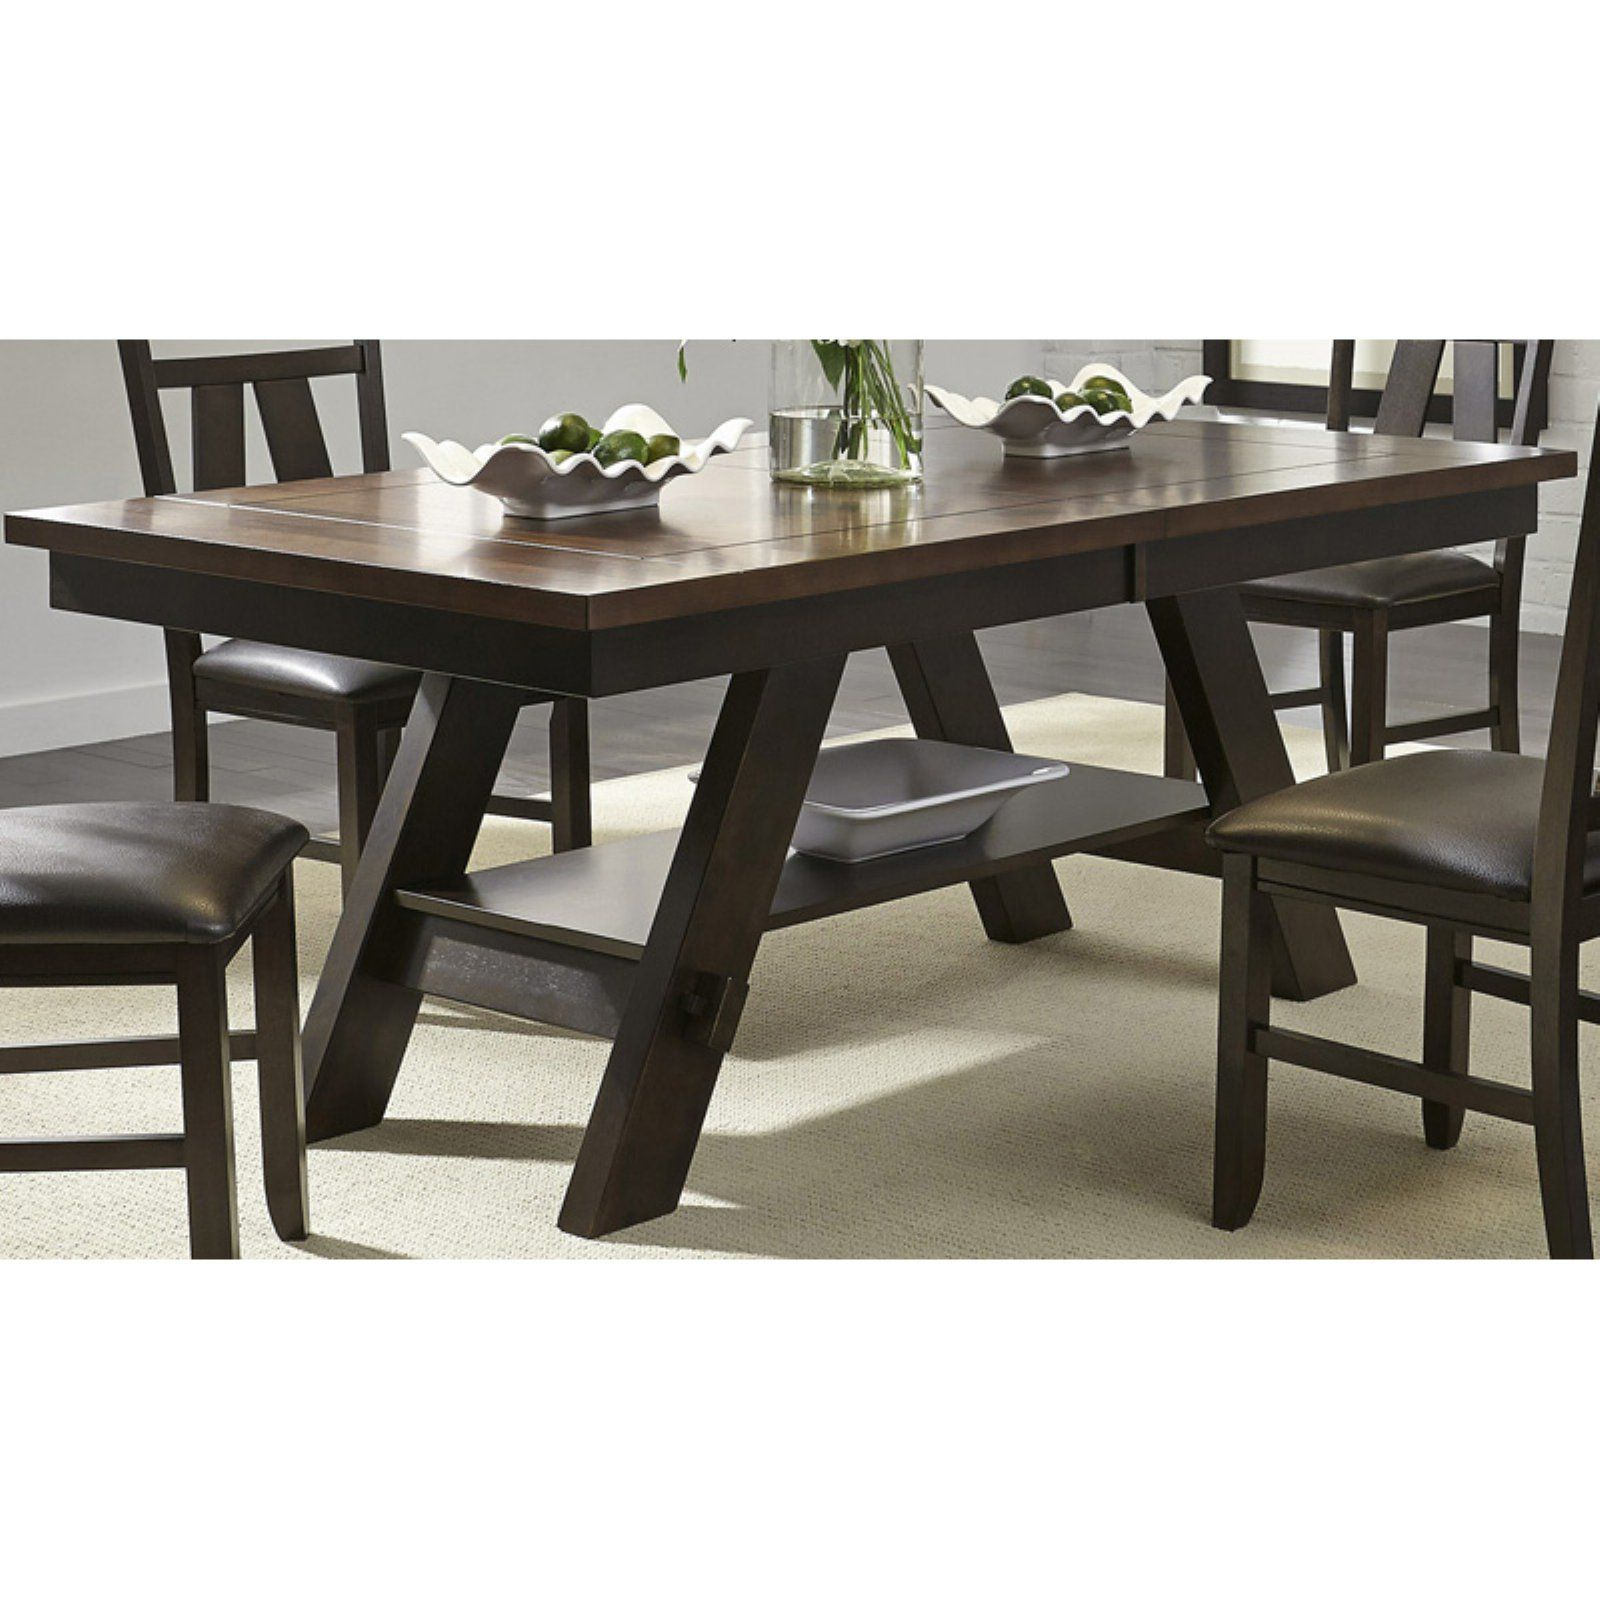 Remarkable Liberty Furniture Industries Lawson Extension Dining Table Caraccident5 Cool Chair Designs And Ideas Caraccident5Info